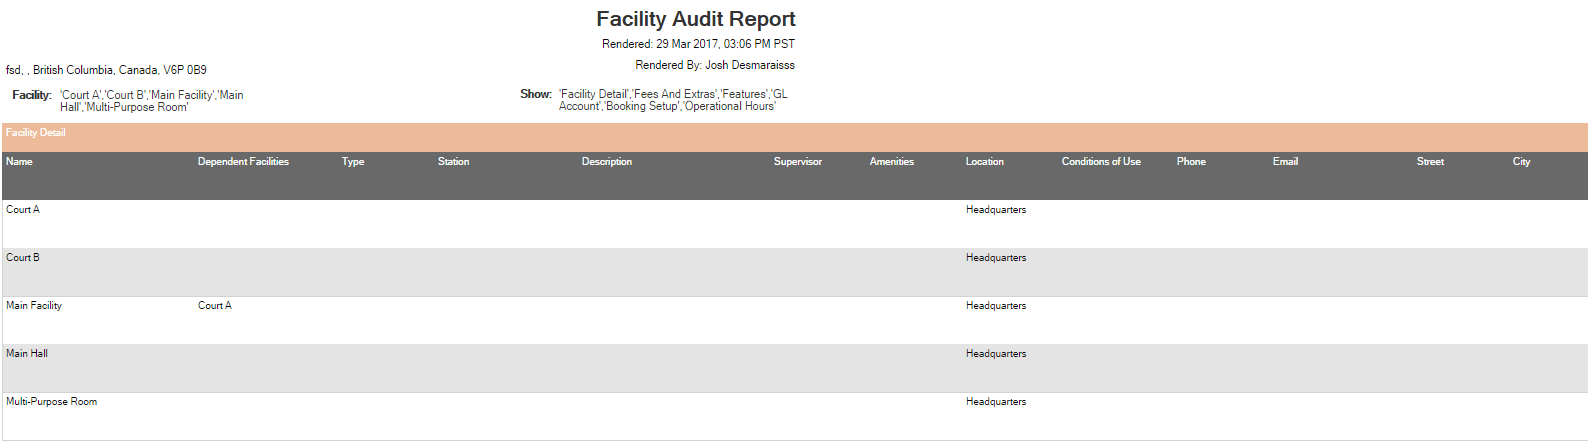 View a Facility Audit Report